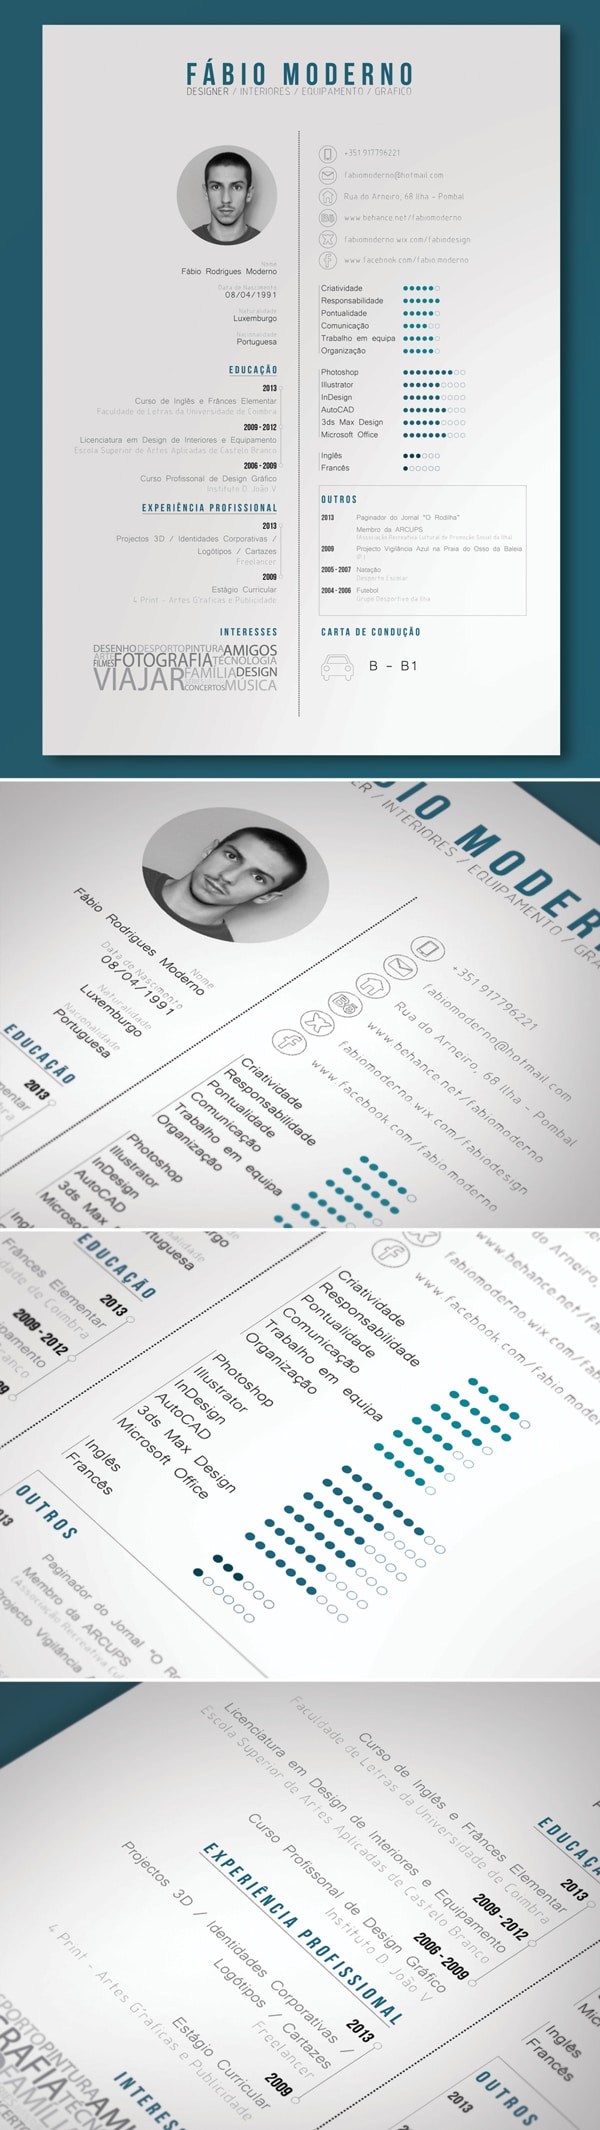 Curriculum Vitae Free Graphic Design Resume